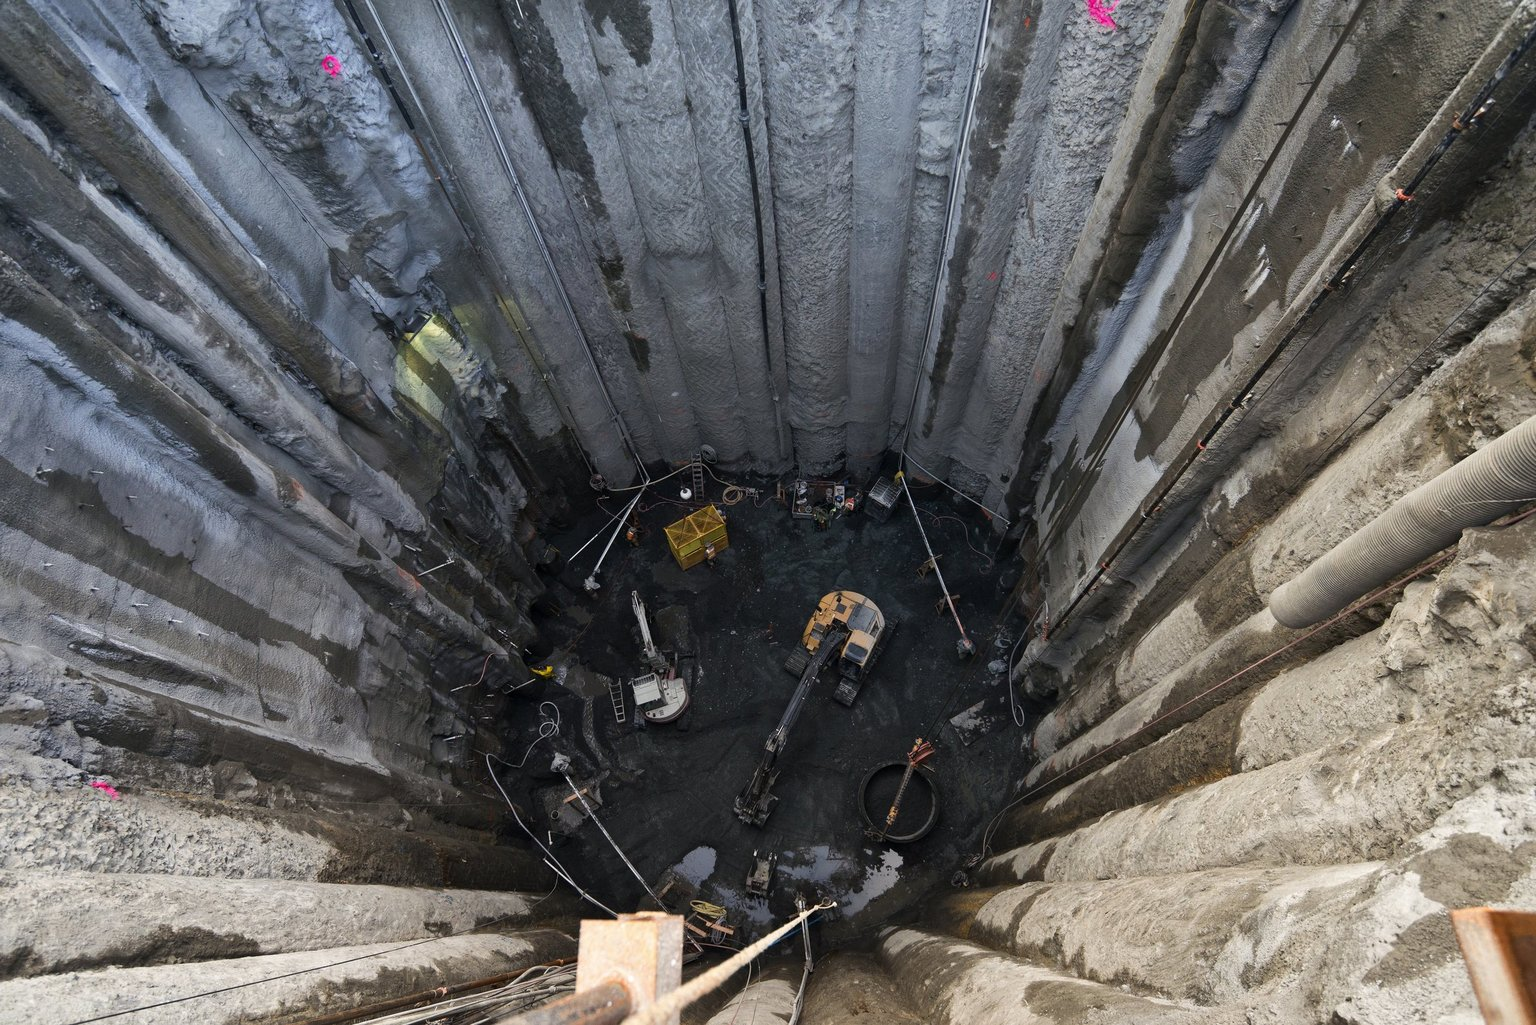 Peering into the 130-foot-deep rescue shaft. Photo credit: Seattle Times